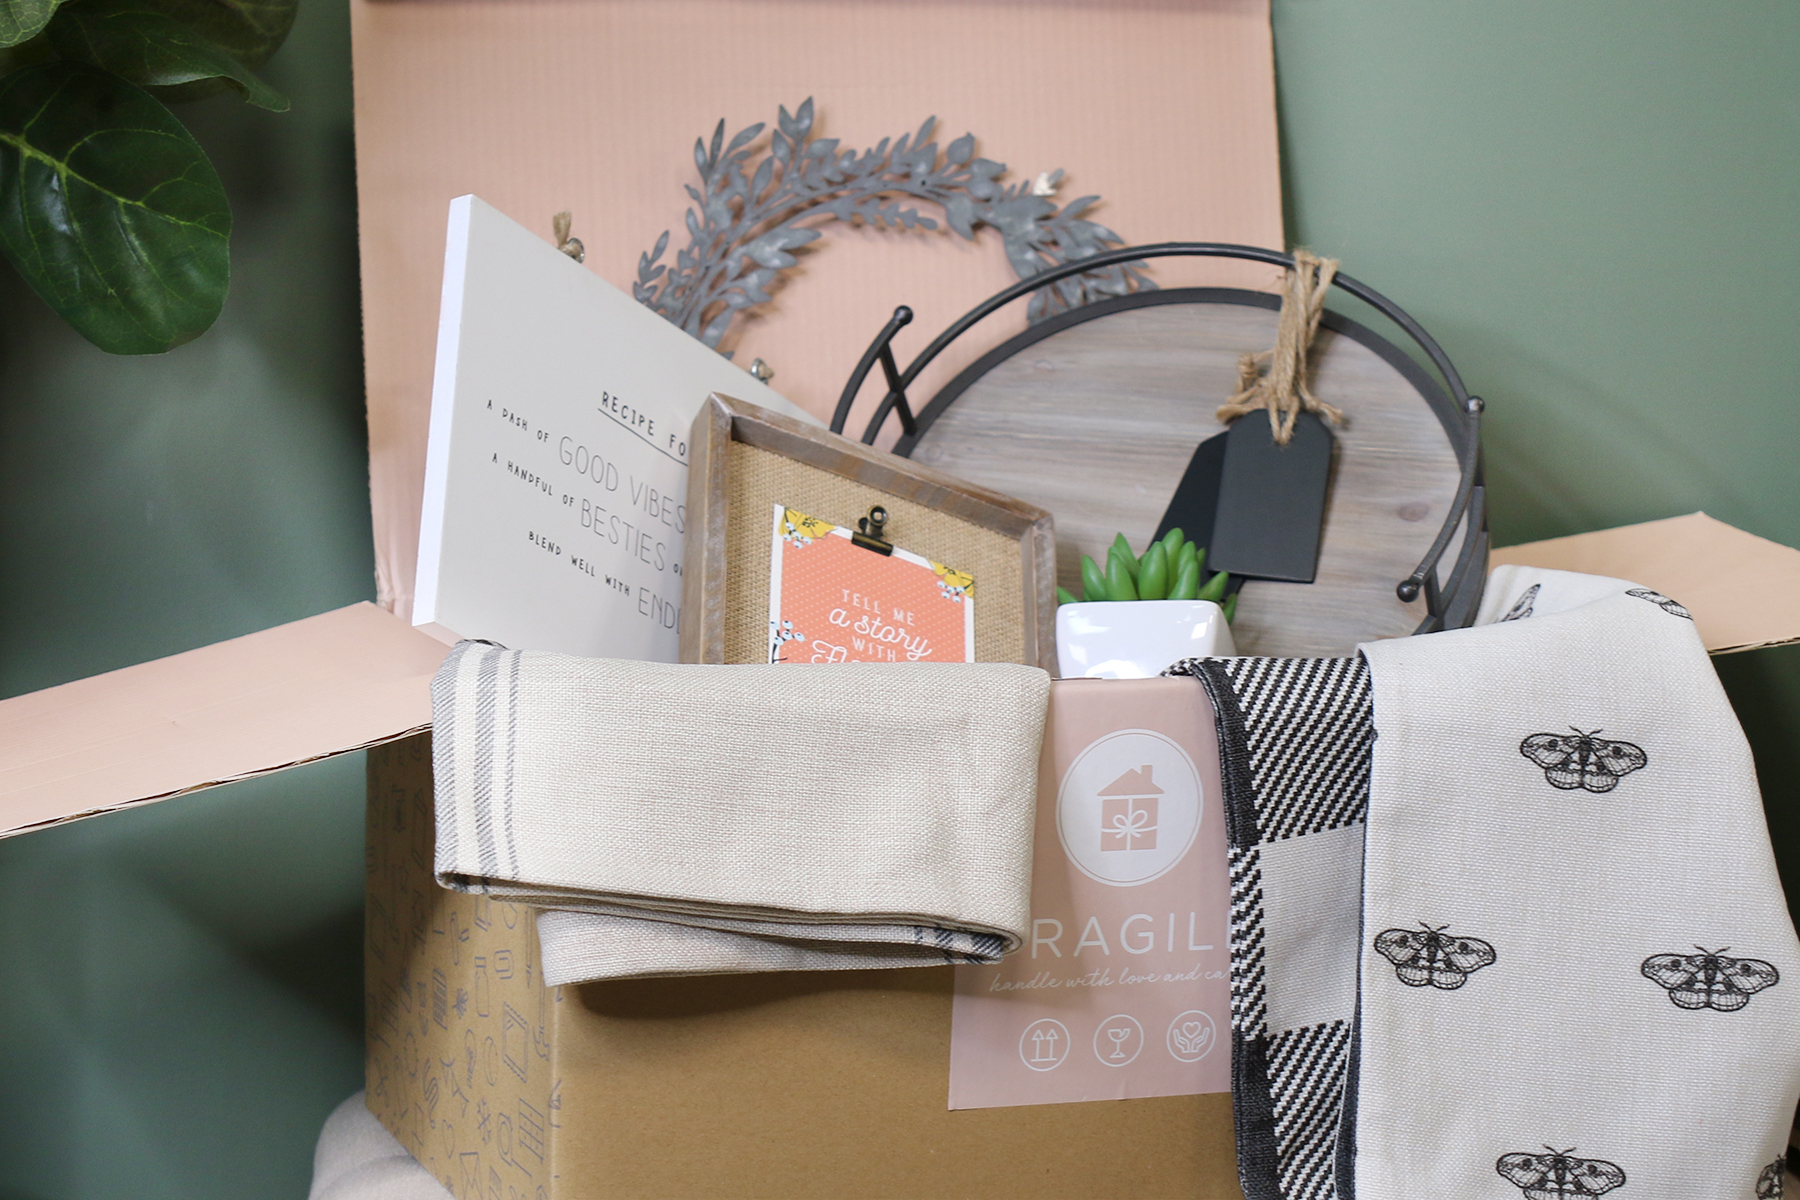 Decocrated a new home d cor subscription box company - Home decor subscription box ...